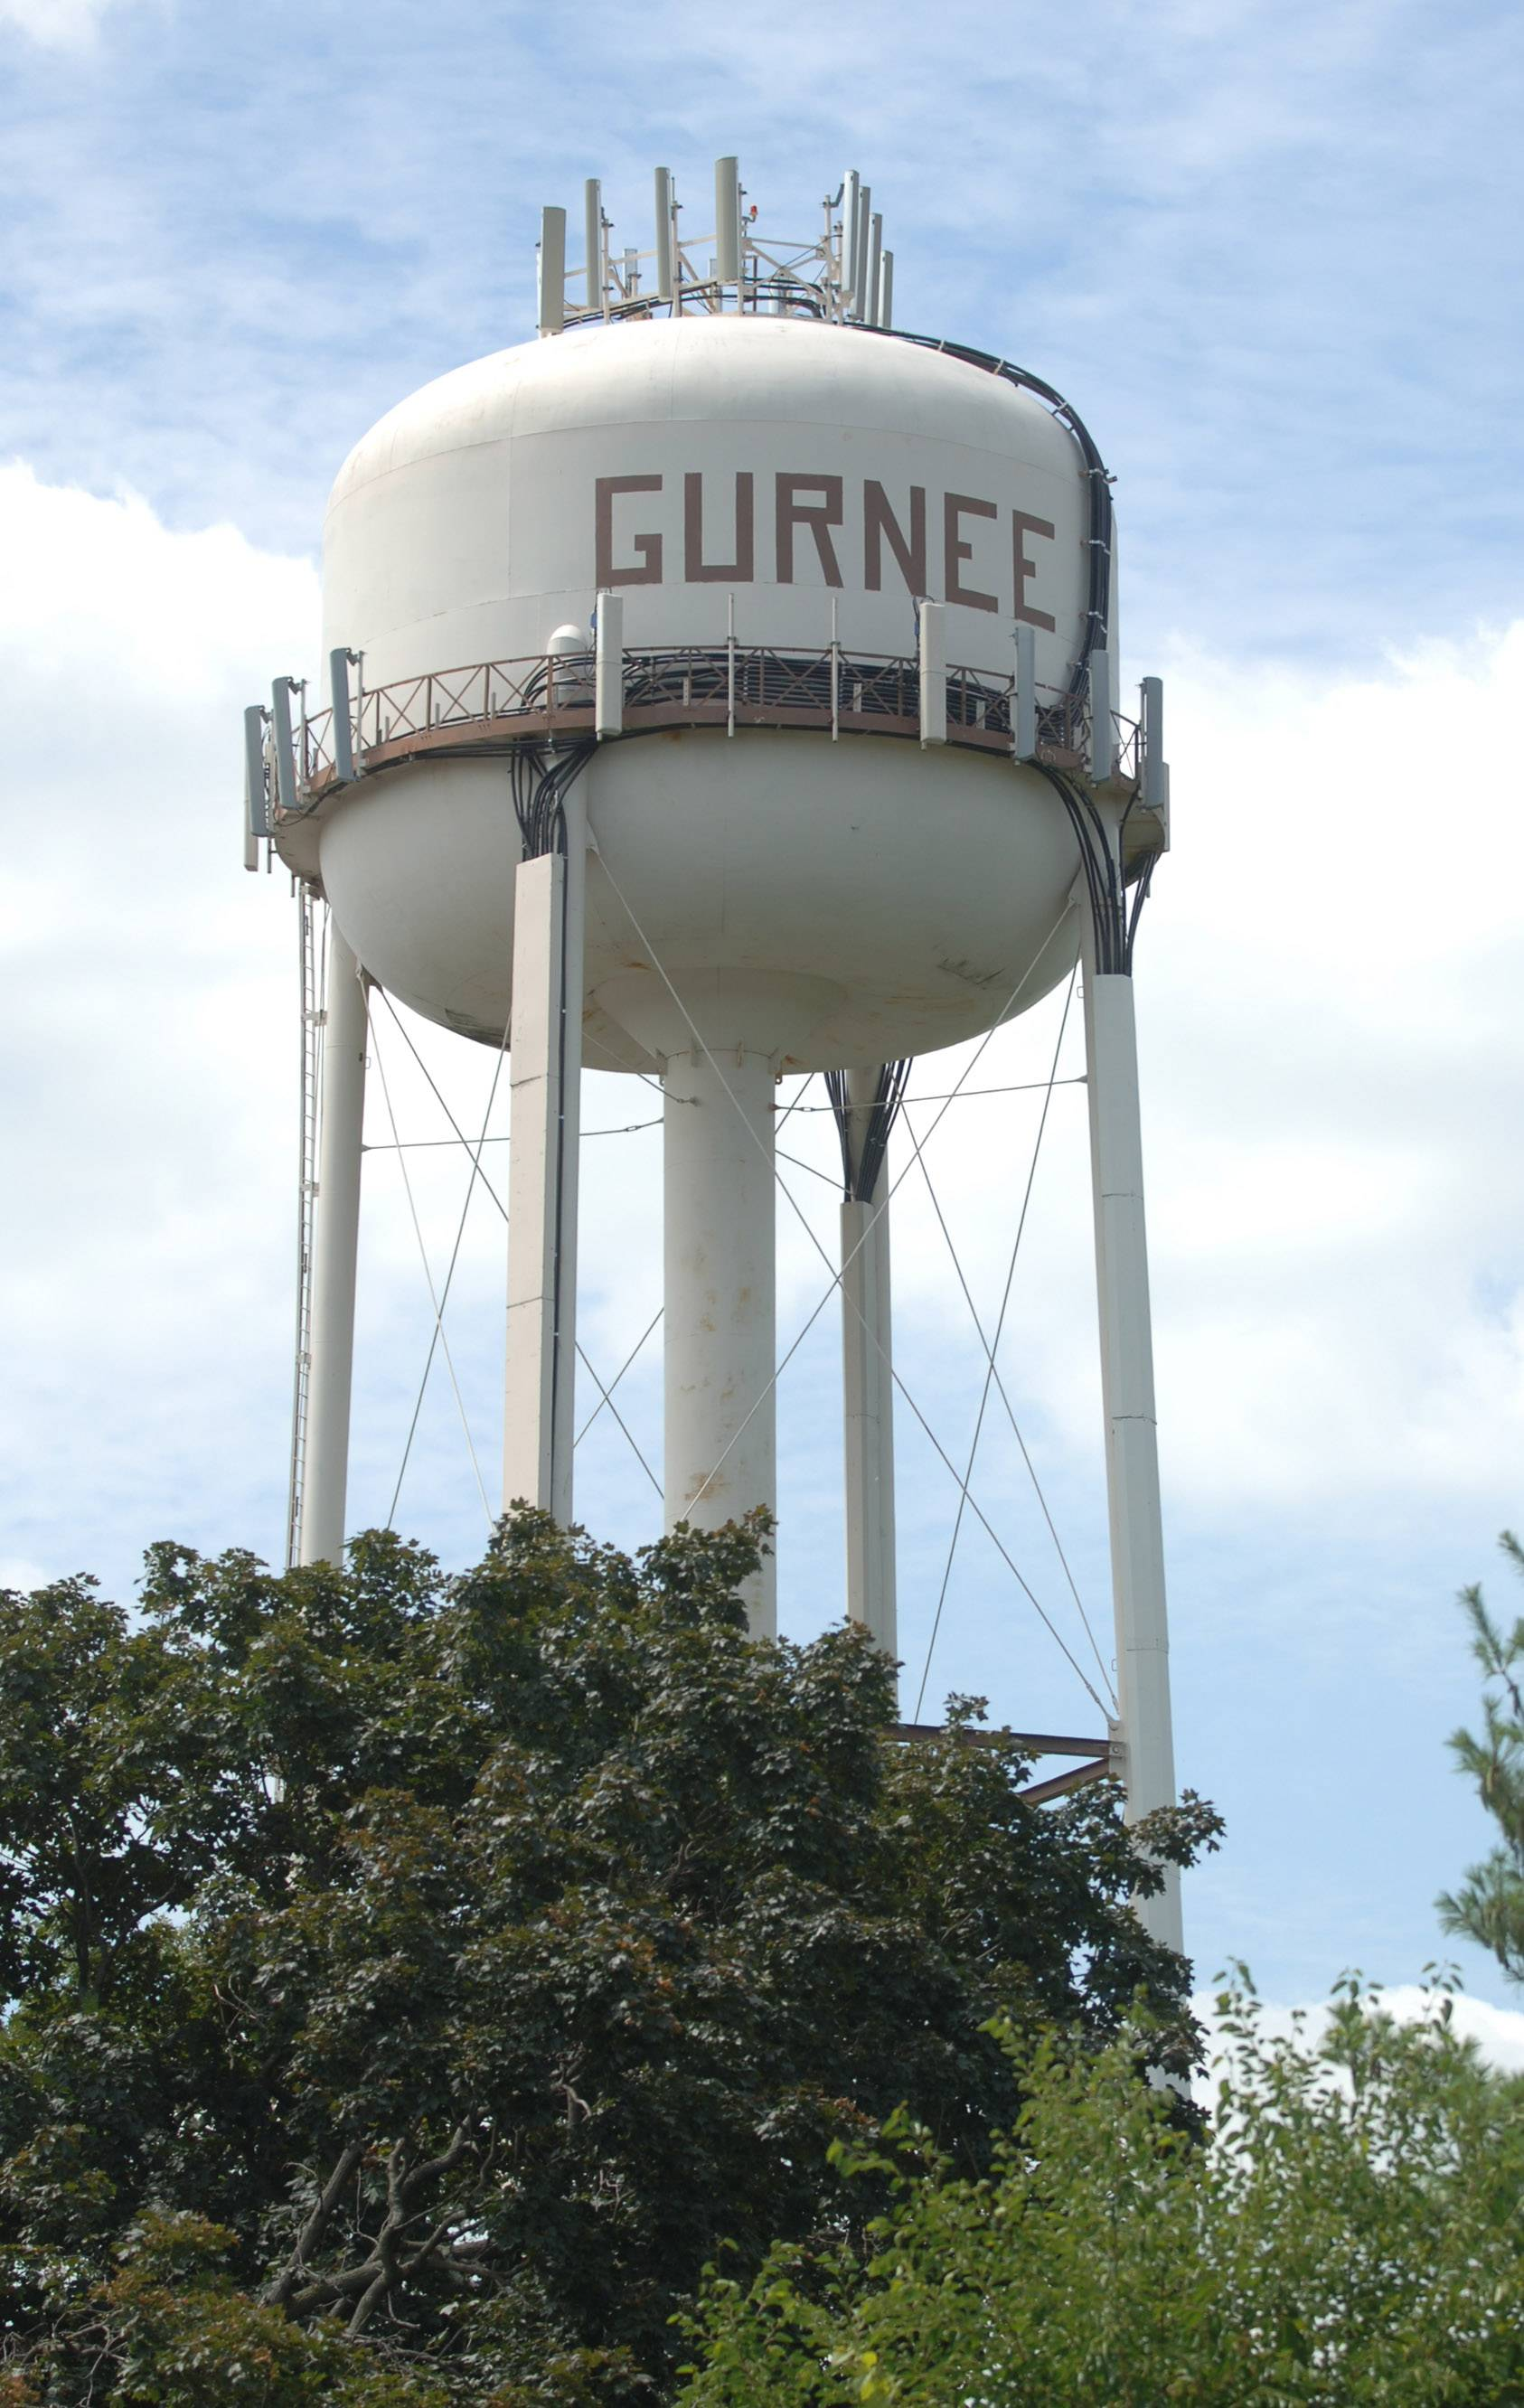 This water tower near Fire Station 1 in Gurnee will be removed this spring. The village approved a plan to build a new water tower on the west side of town by 2020.